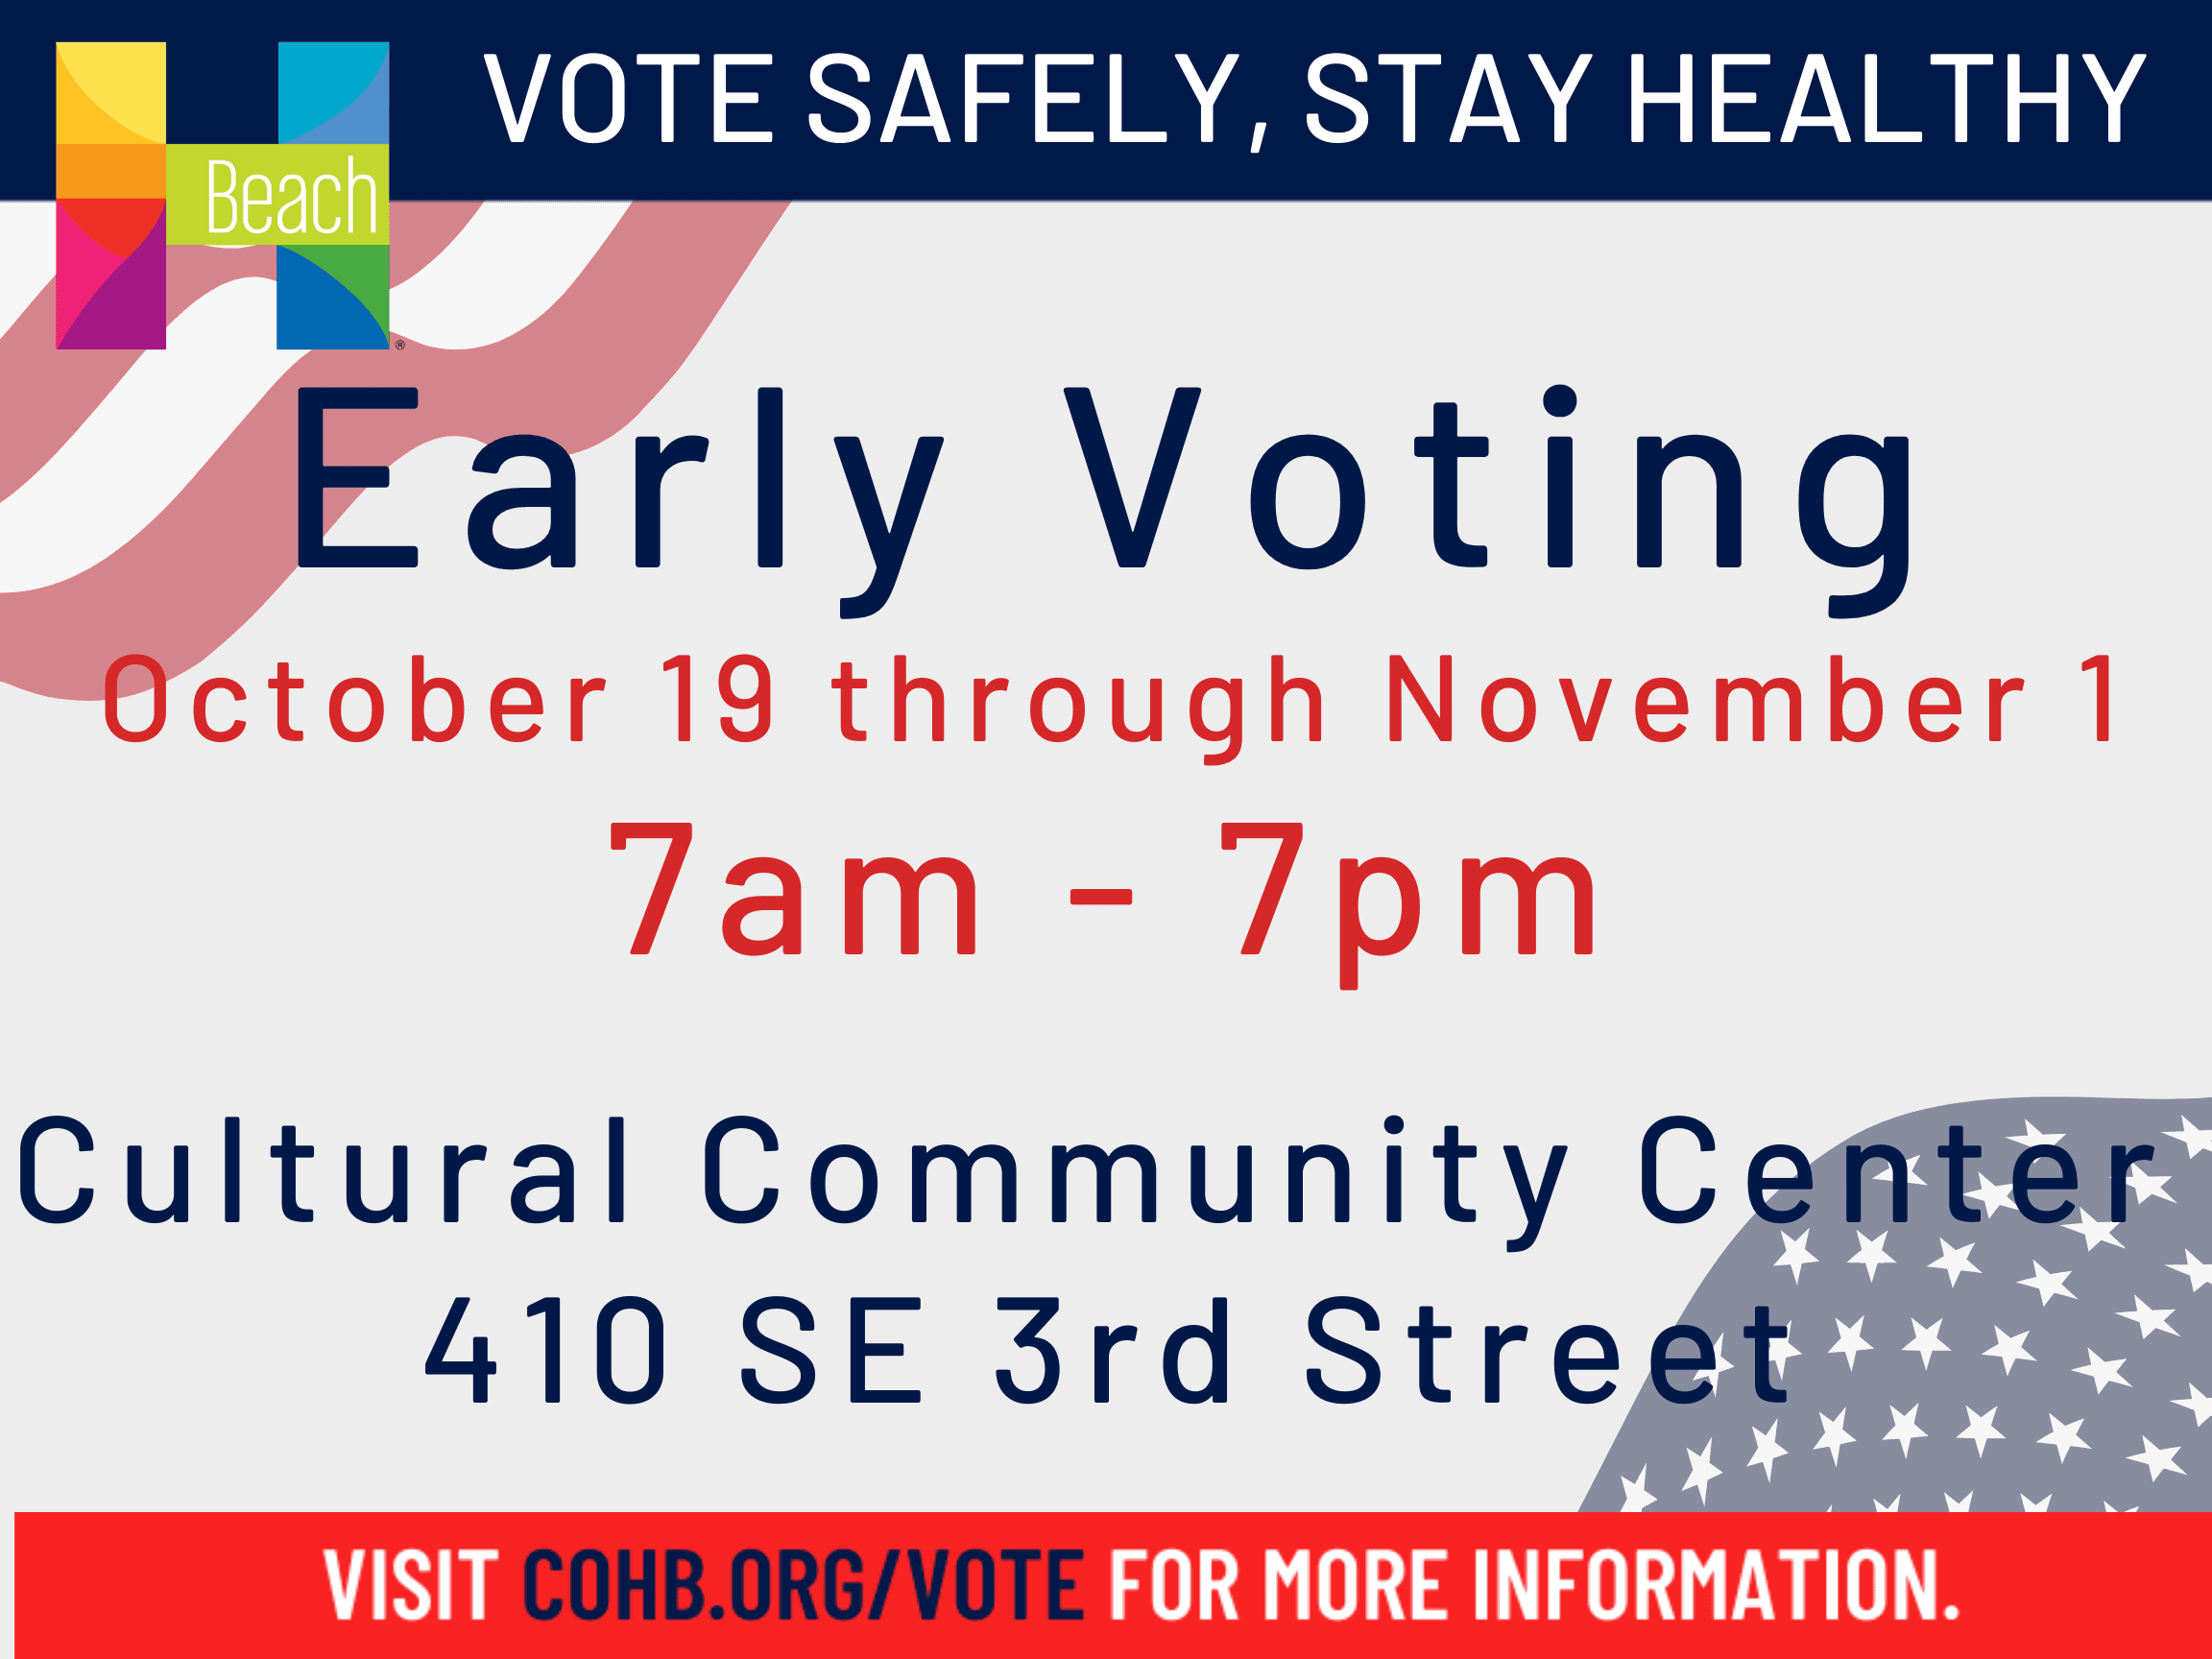 Early Vote Safely